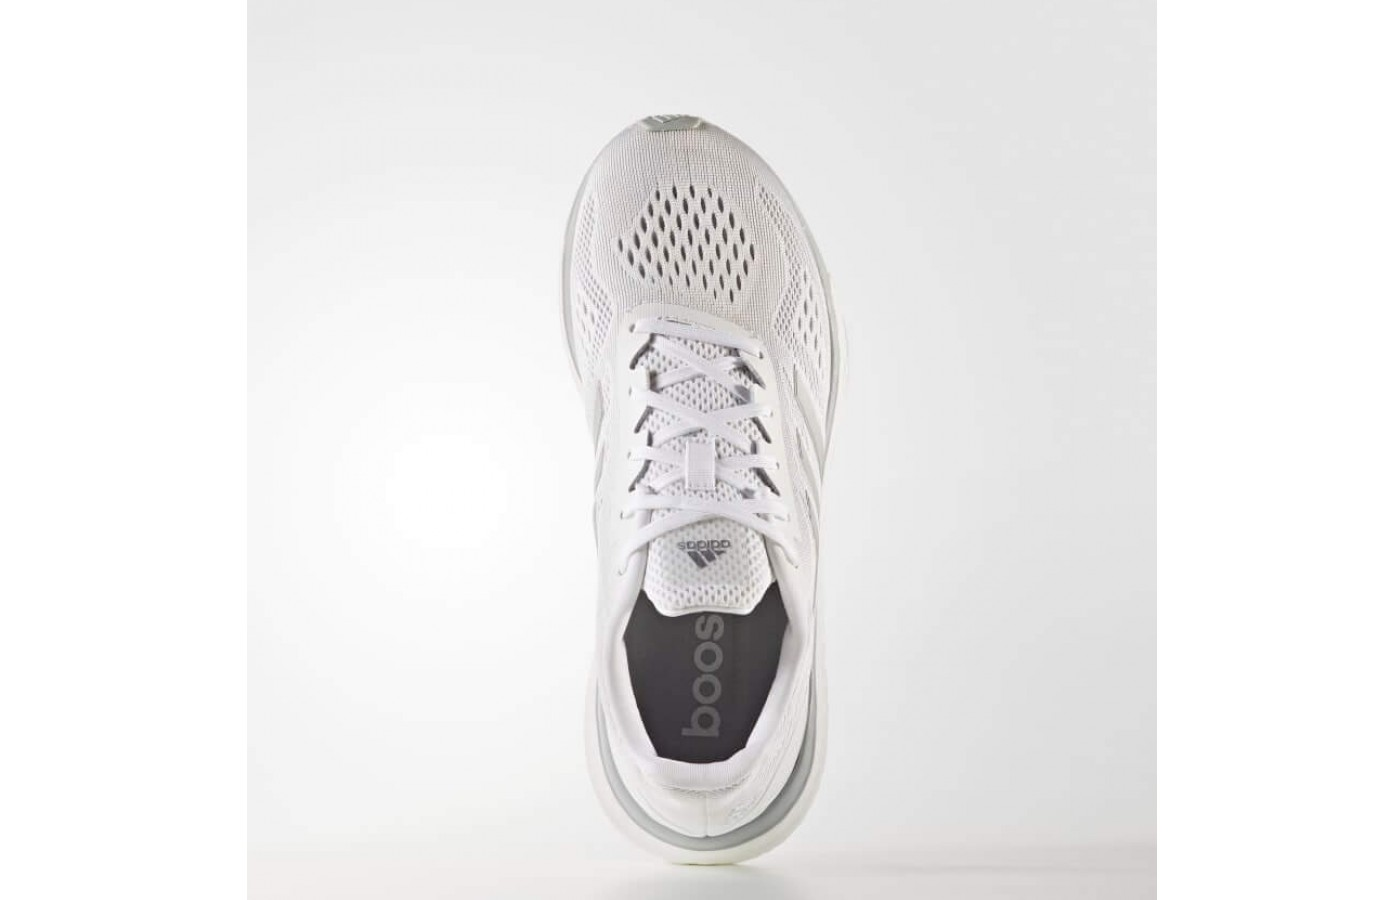 c6cfe07c0a53f8 Adidas Response Limited - To Buy or Not in Mar 2019